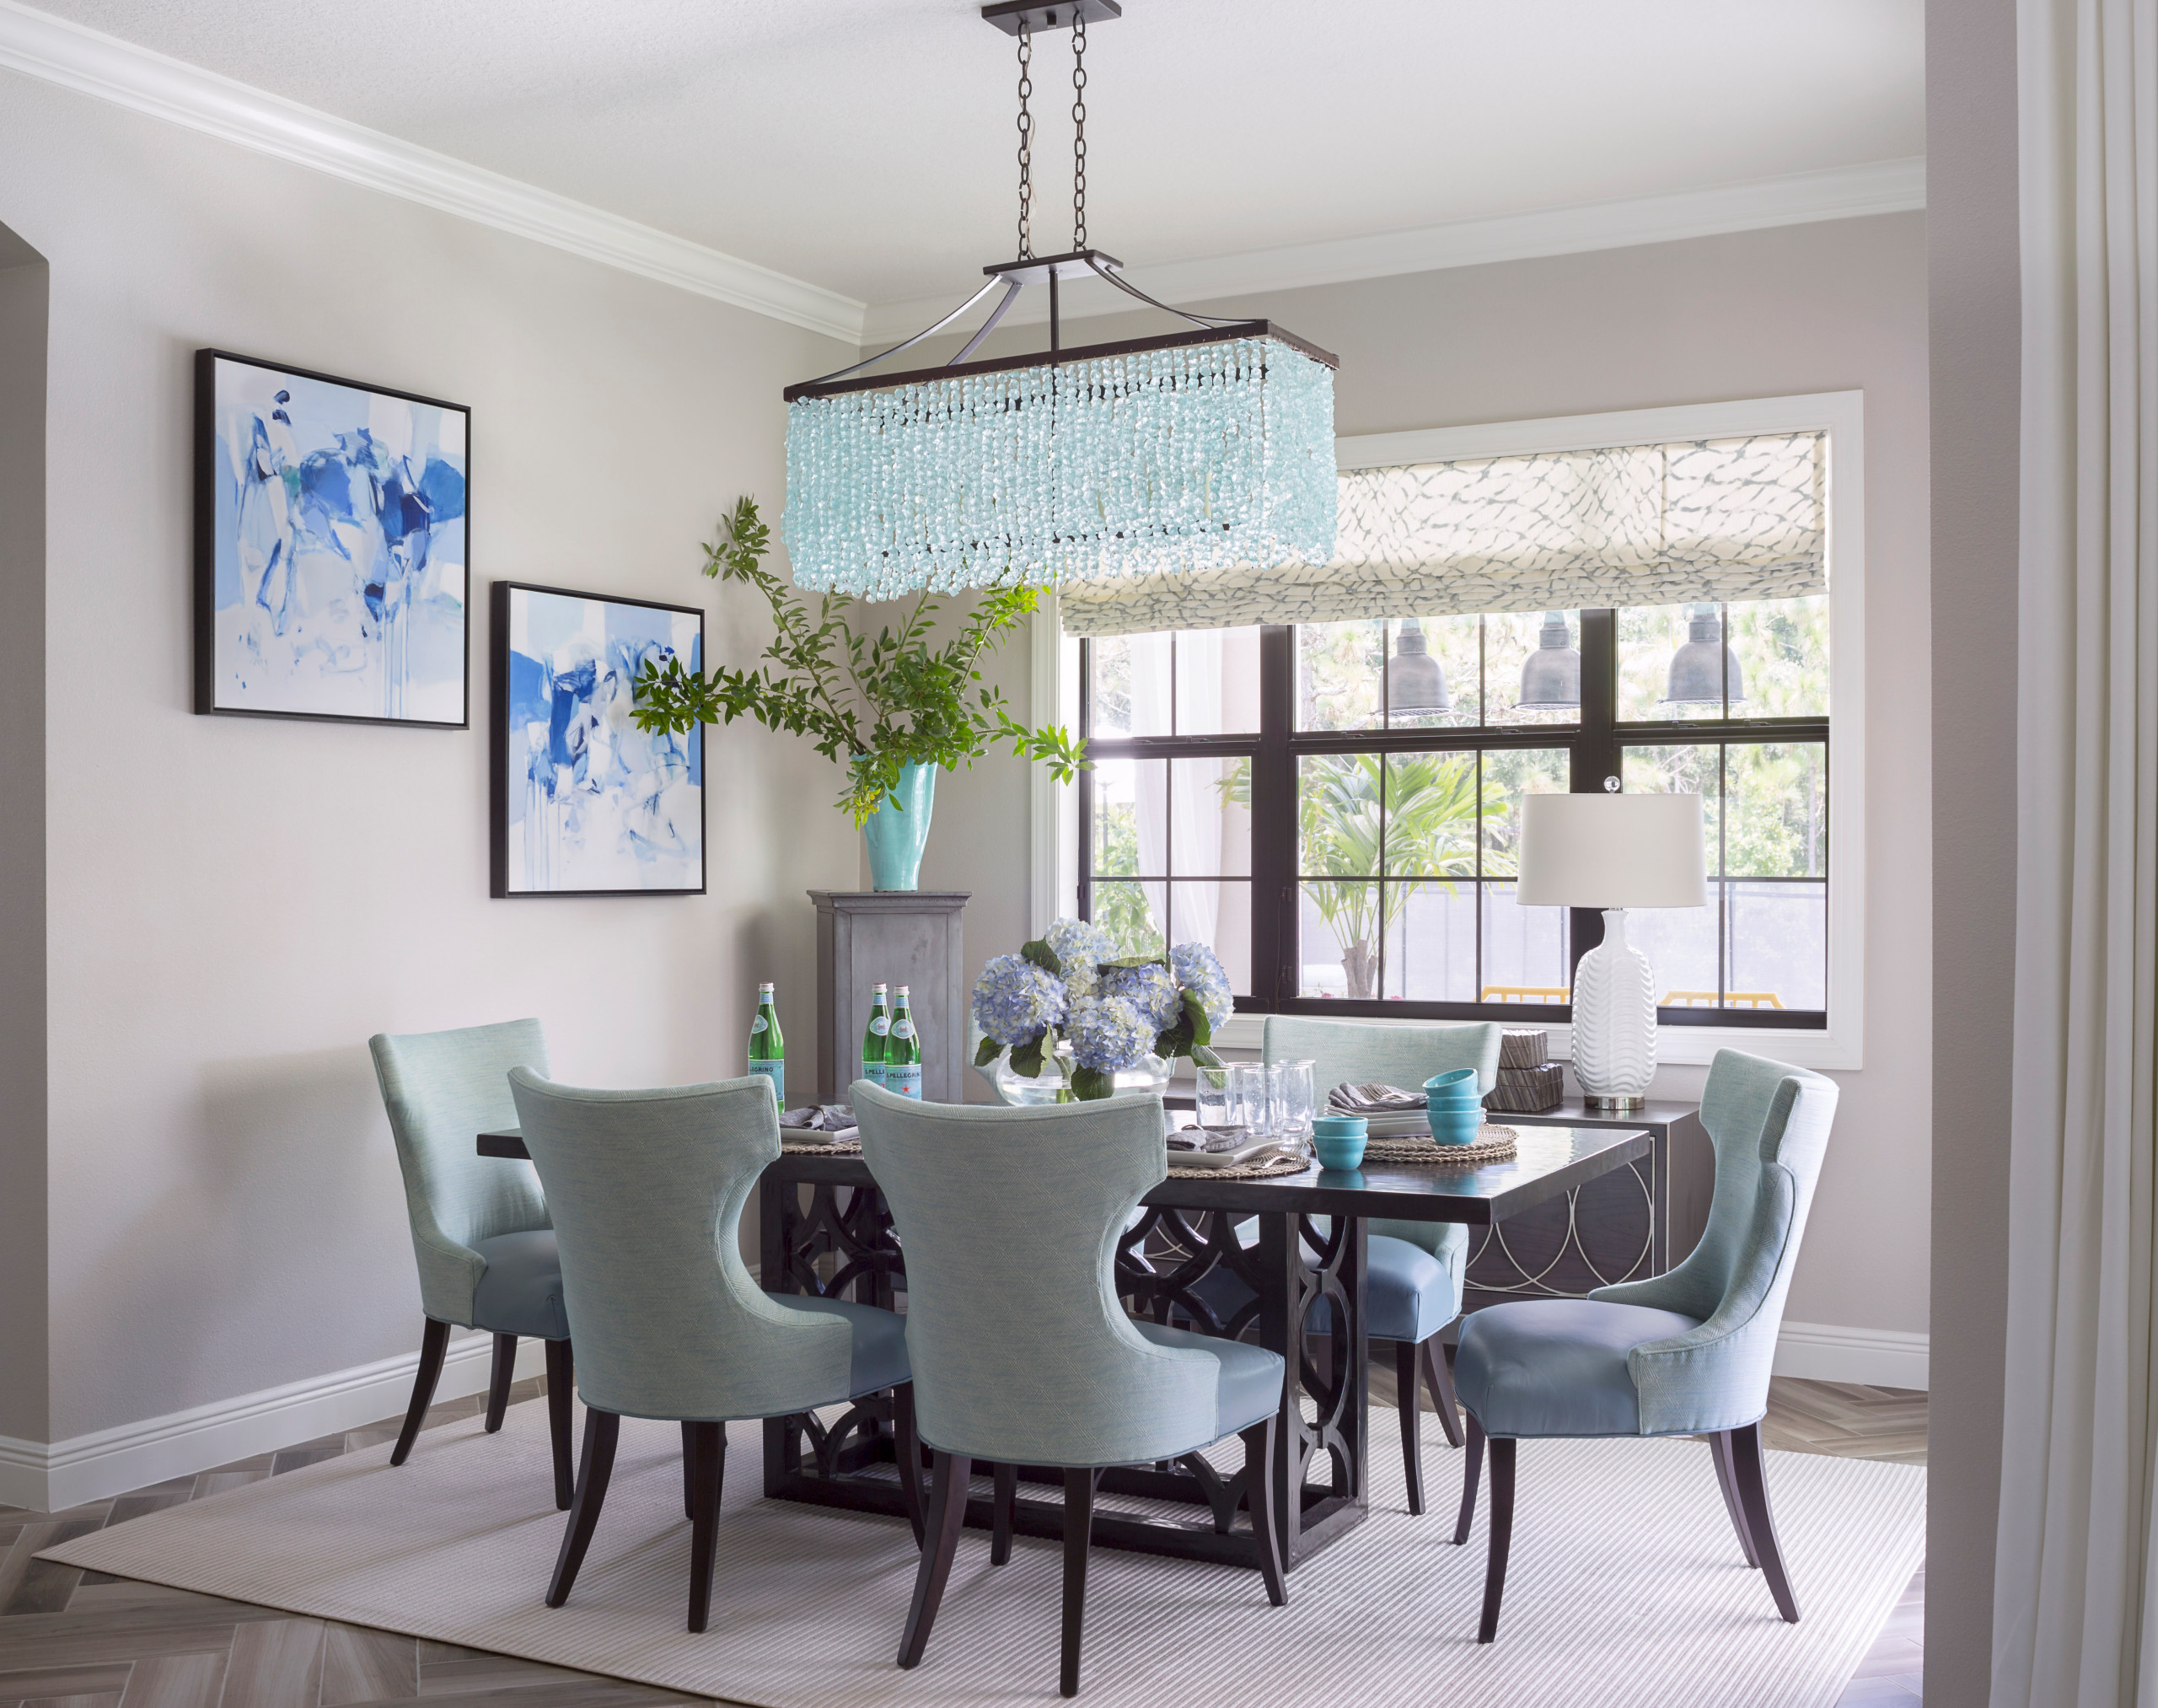 16 Beautiful Dining Room Pictures & Ideas - September, 16  Houzz